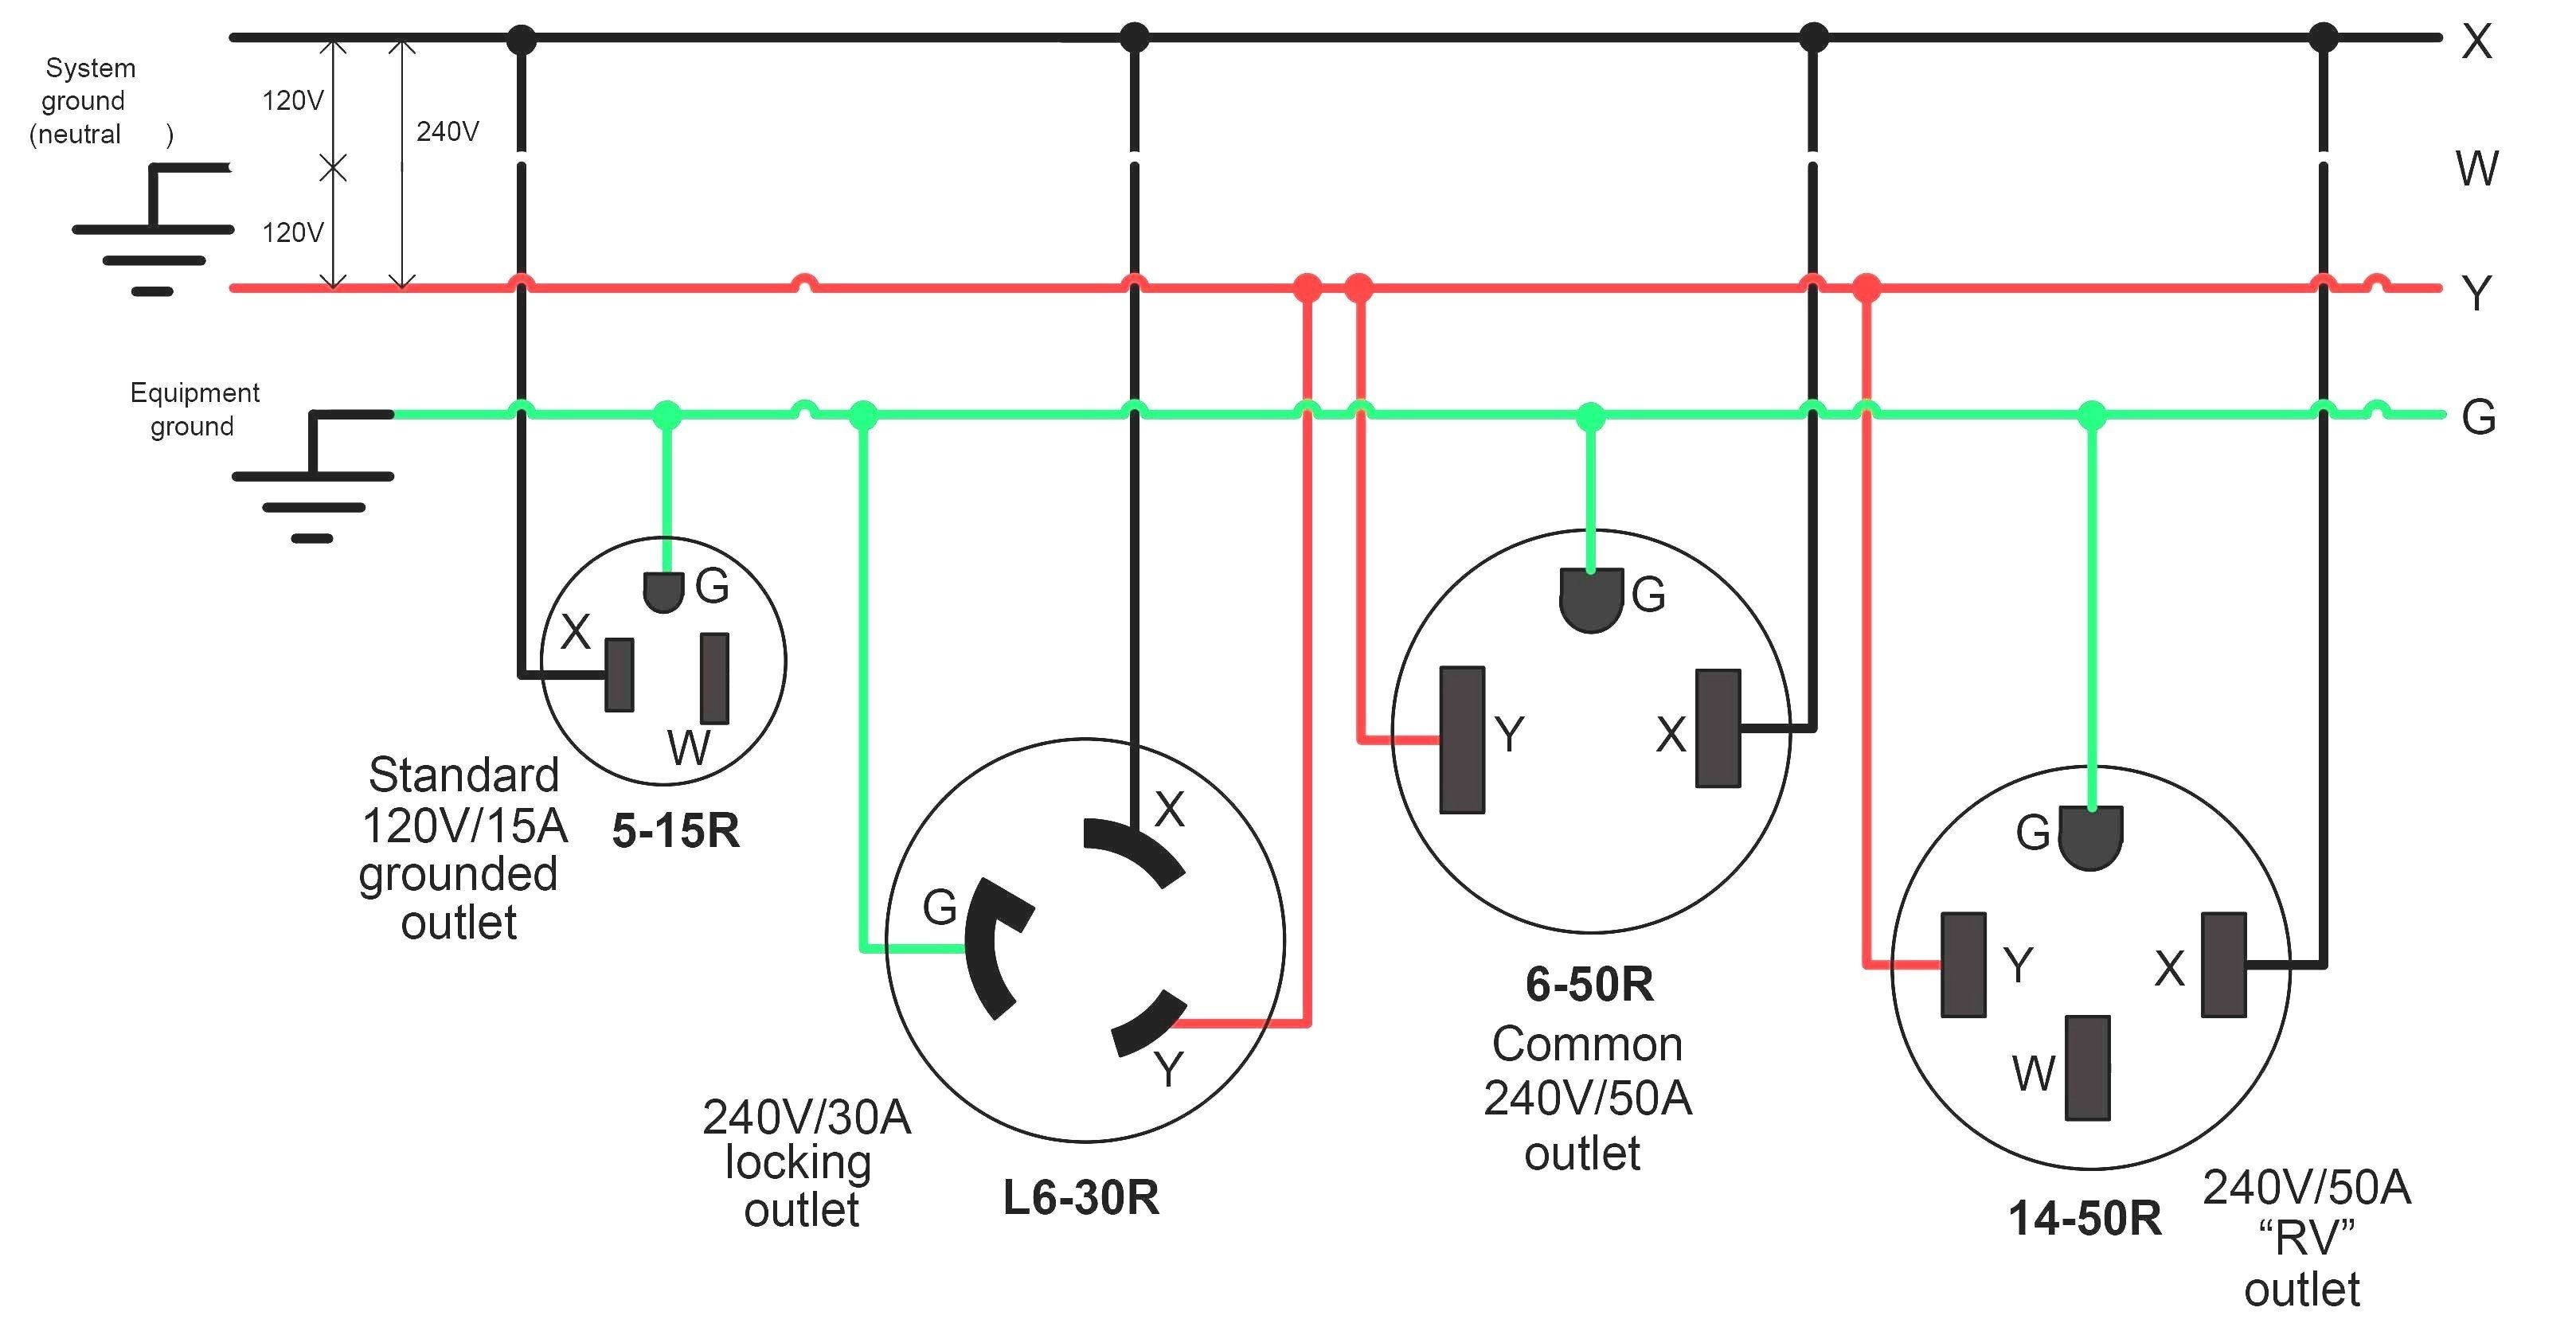 ac power plugs wire diagram all kind of wiring diagrams u2022 within ac power plug wiring diagram [ 3235 x 1672 Pixel ]